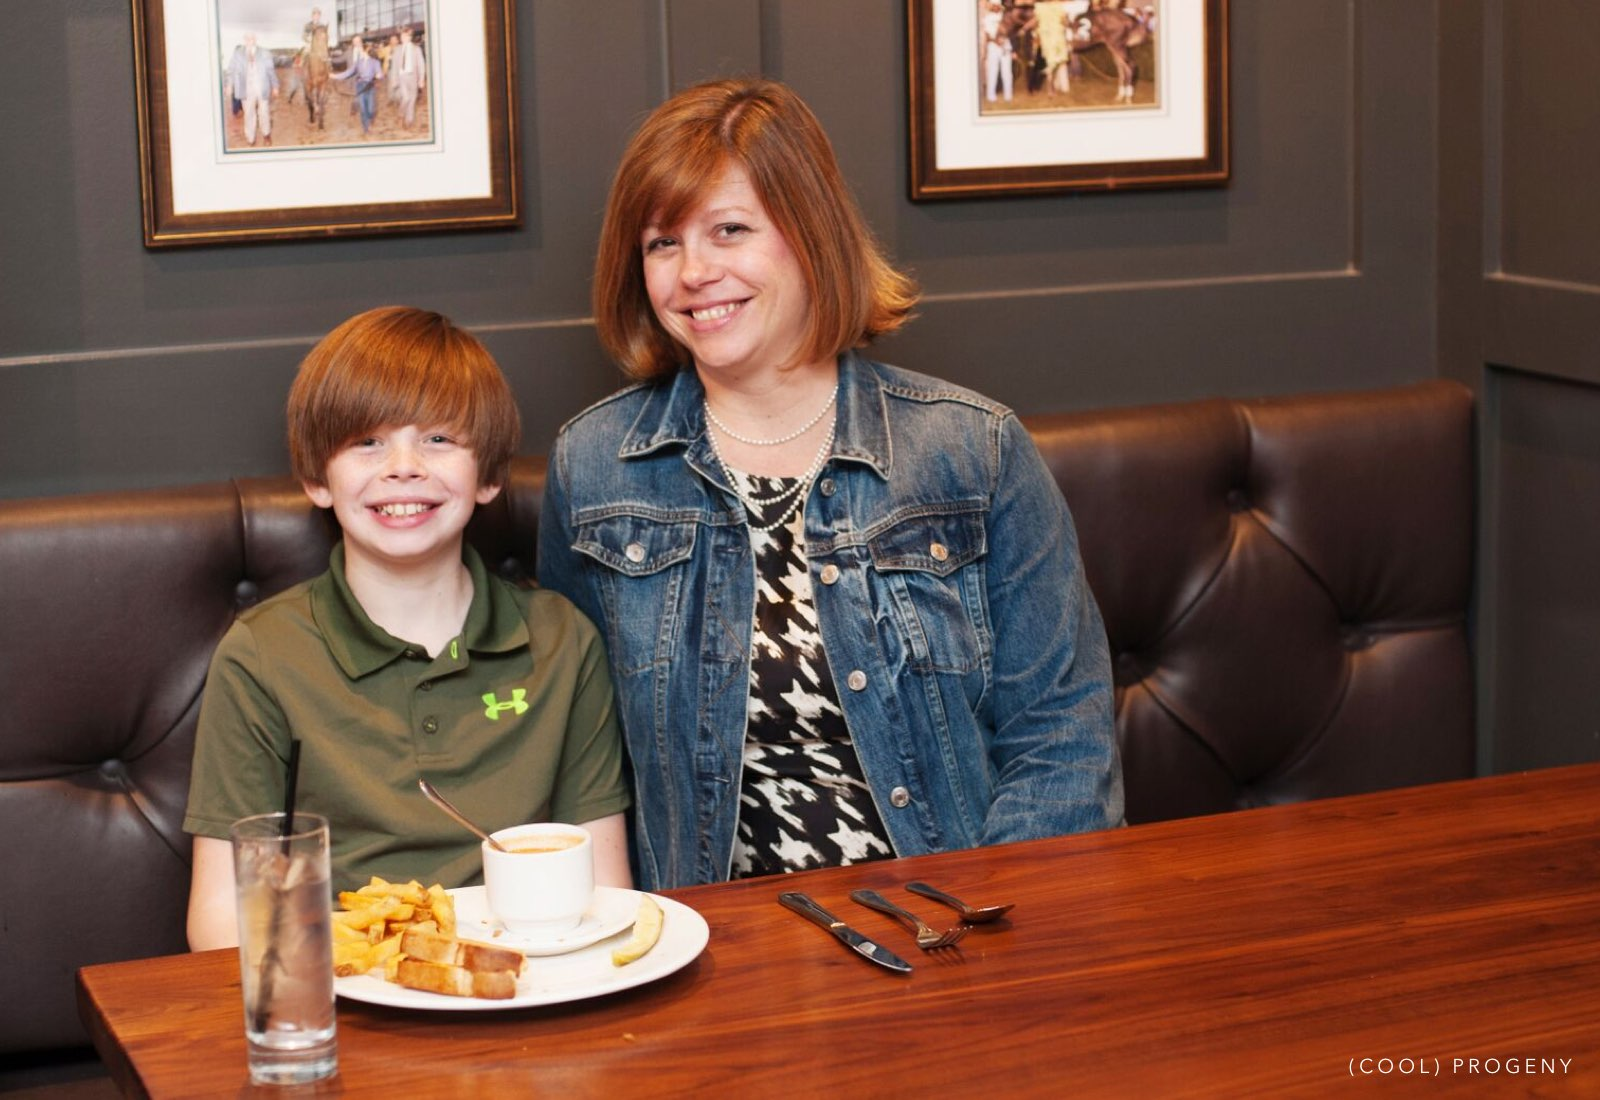 Our Favorite Grilled Cheese in Baltimore - (cool) progeny